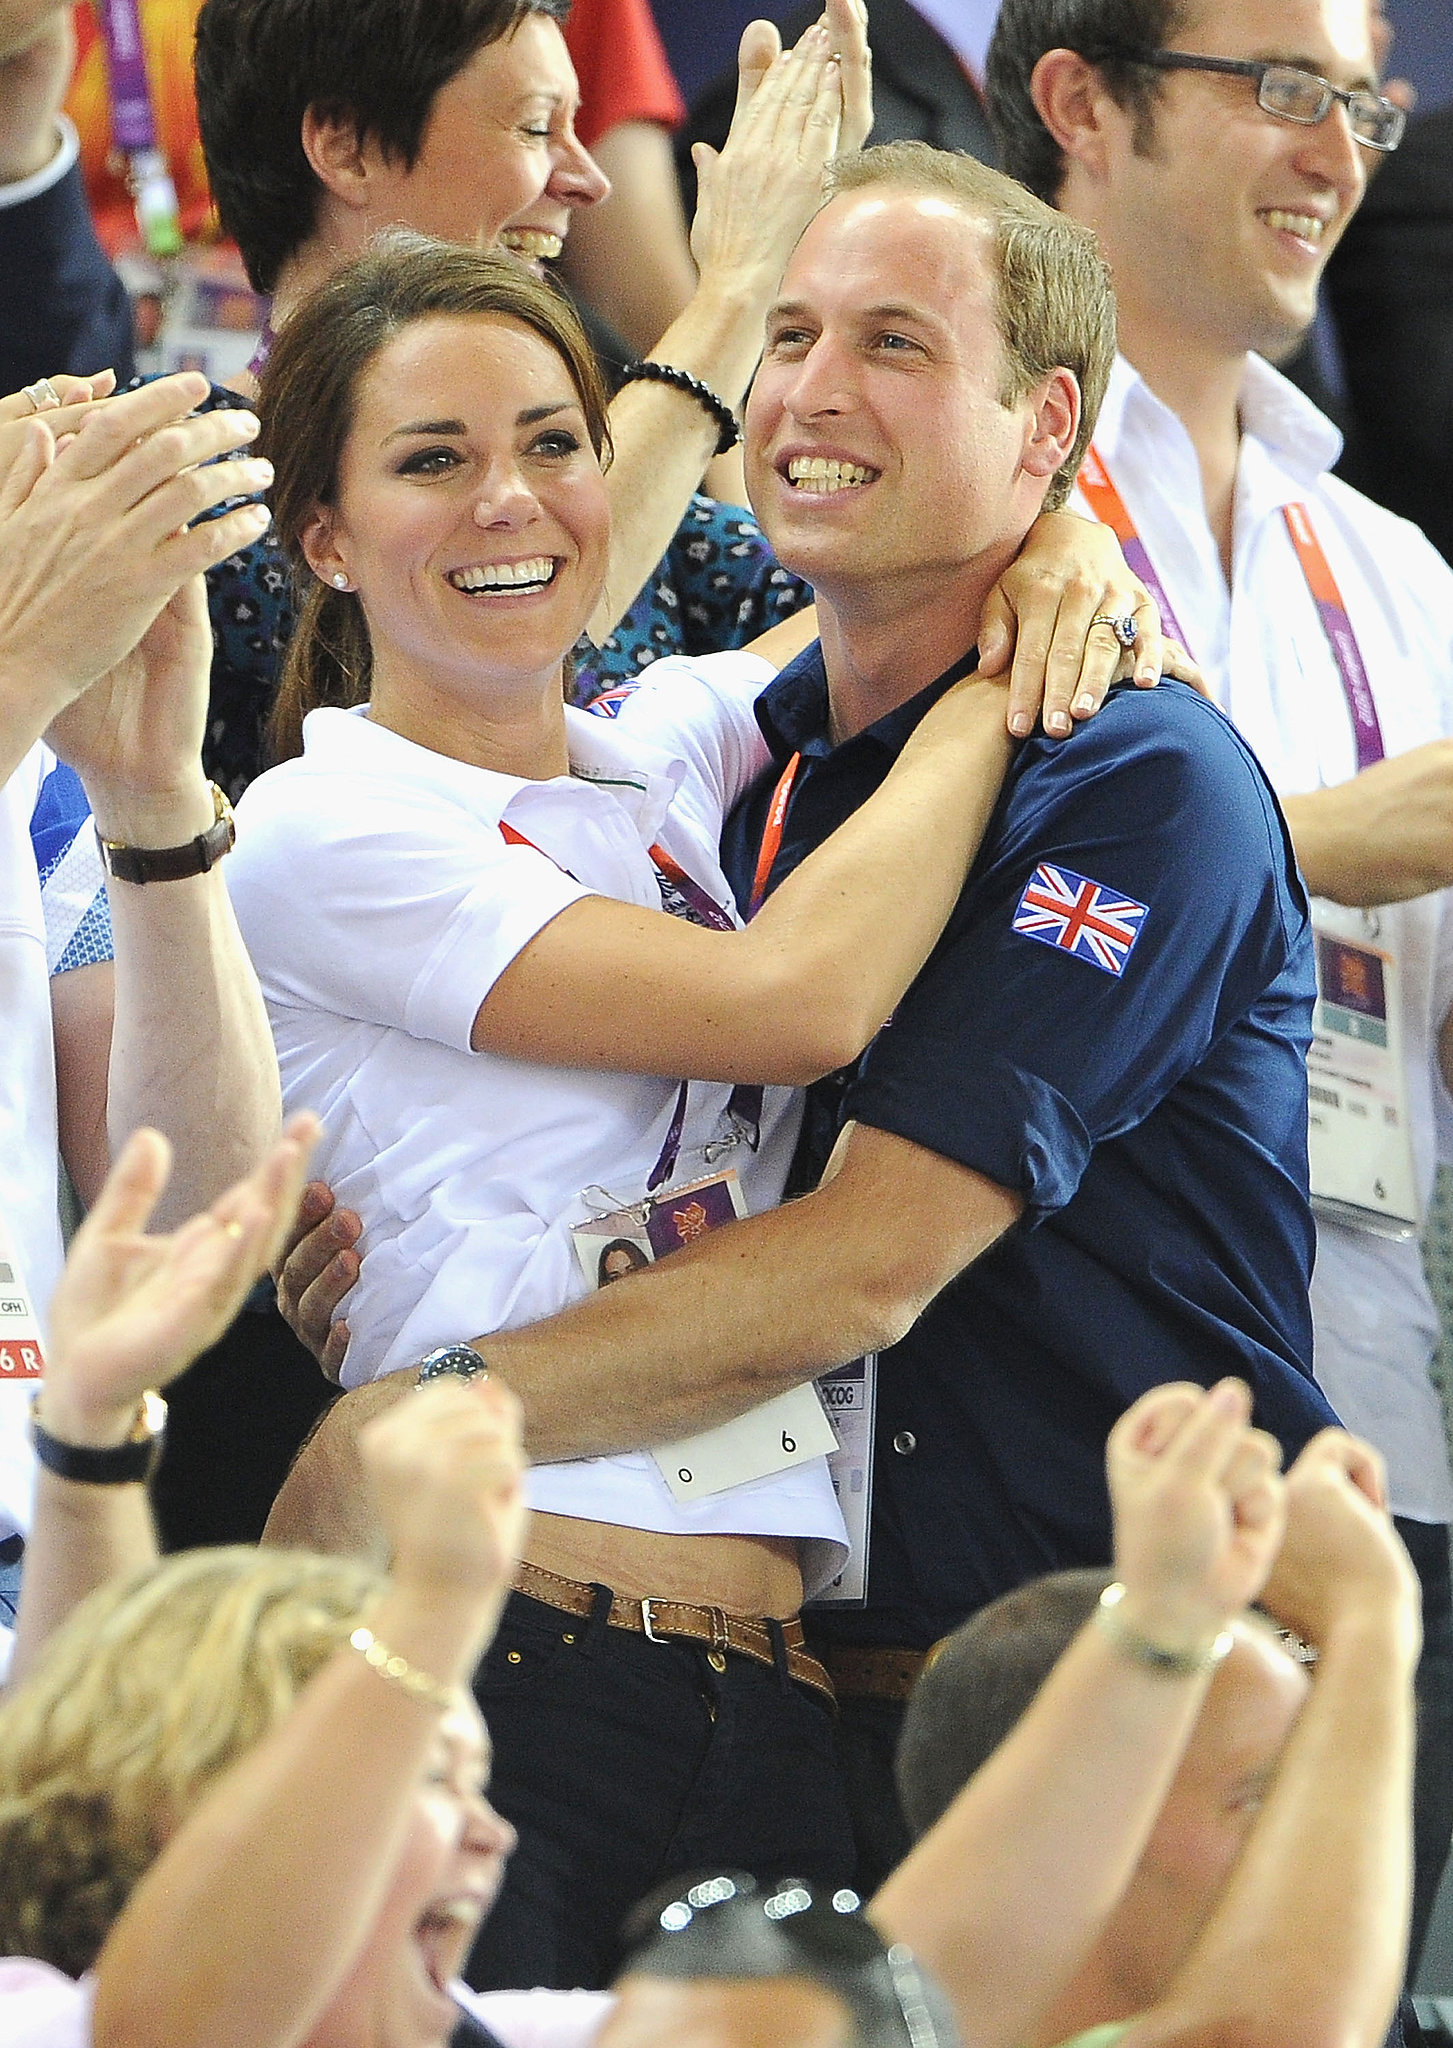 The royal couple were too cute at the 2012 Olympic Games in London.